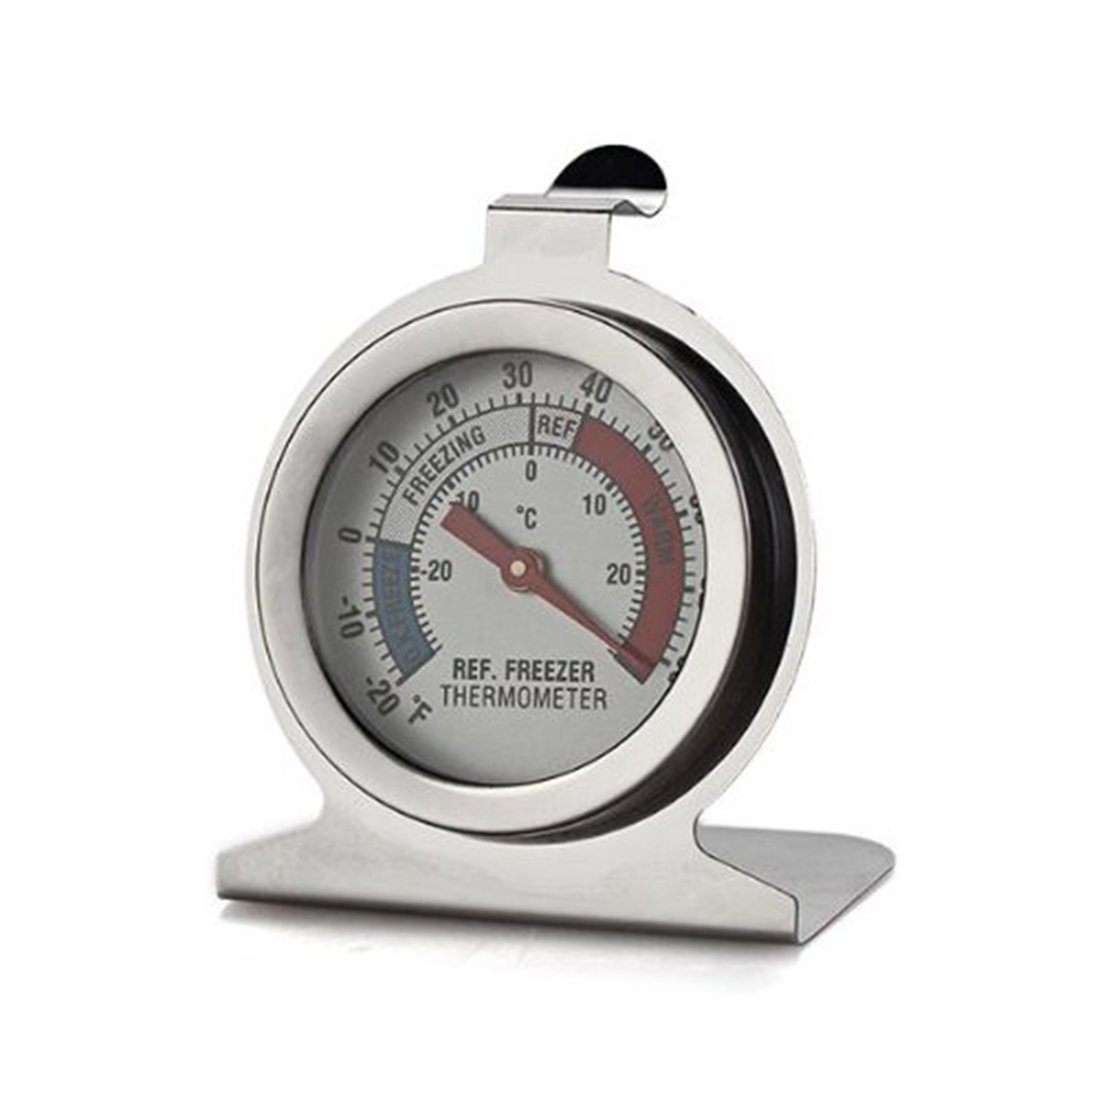 White New Portable Kitchen Thermometer Stainless Steel Dial for Refrigerator MR.JIANG RayMALL0718